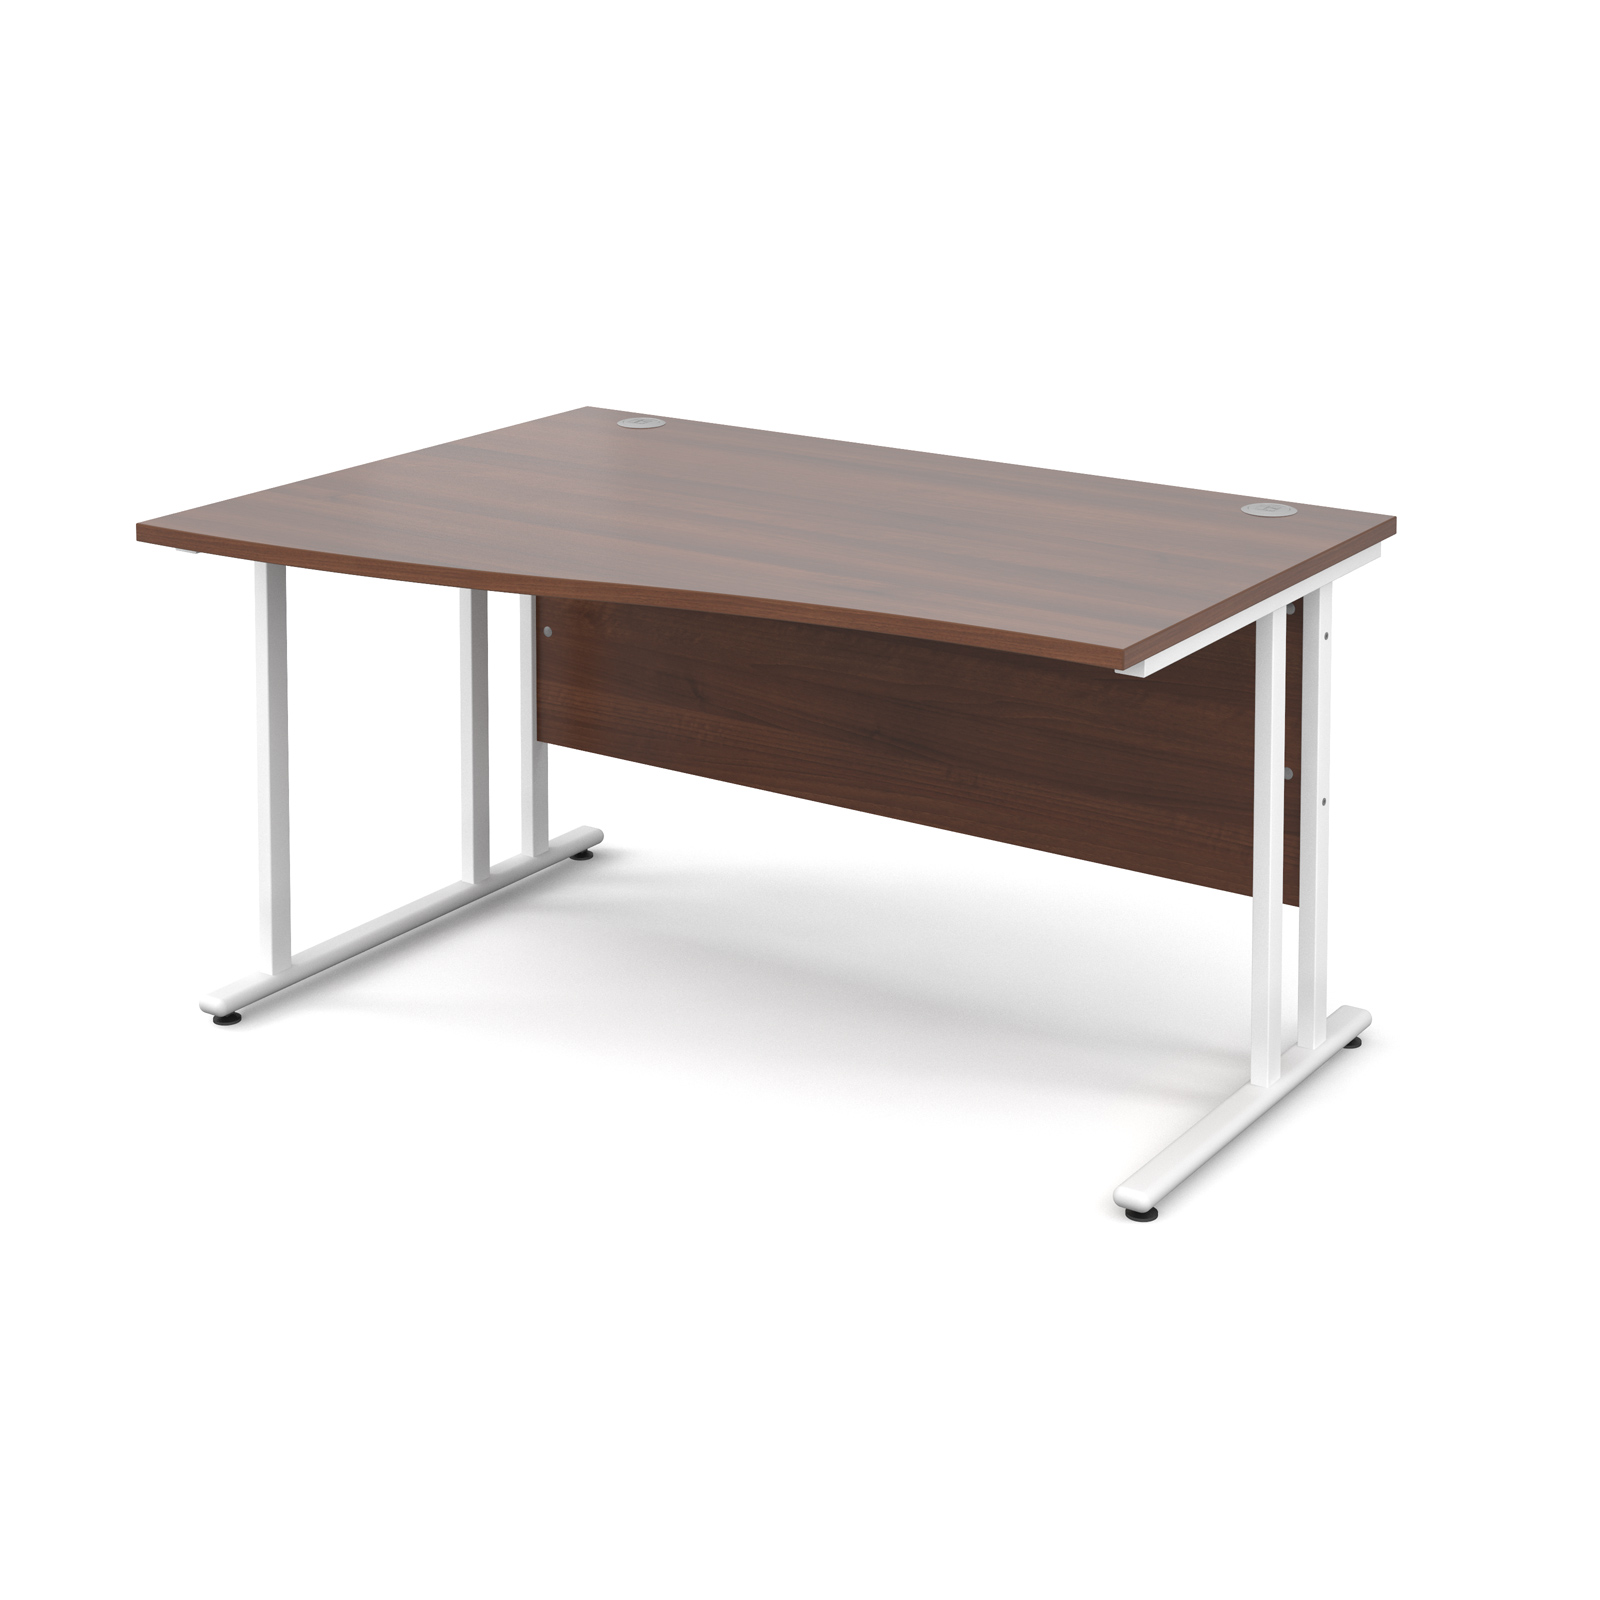 Maestro 25 WL left hand wave desk 1400mm - white cantilever frame and walnut top